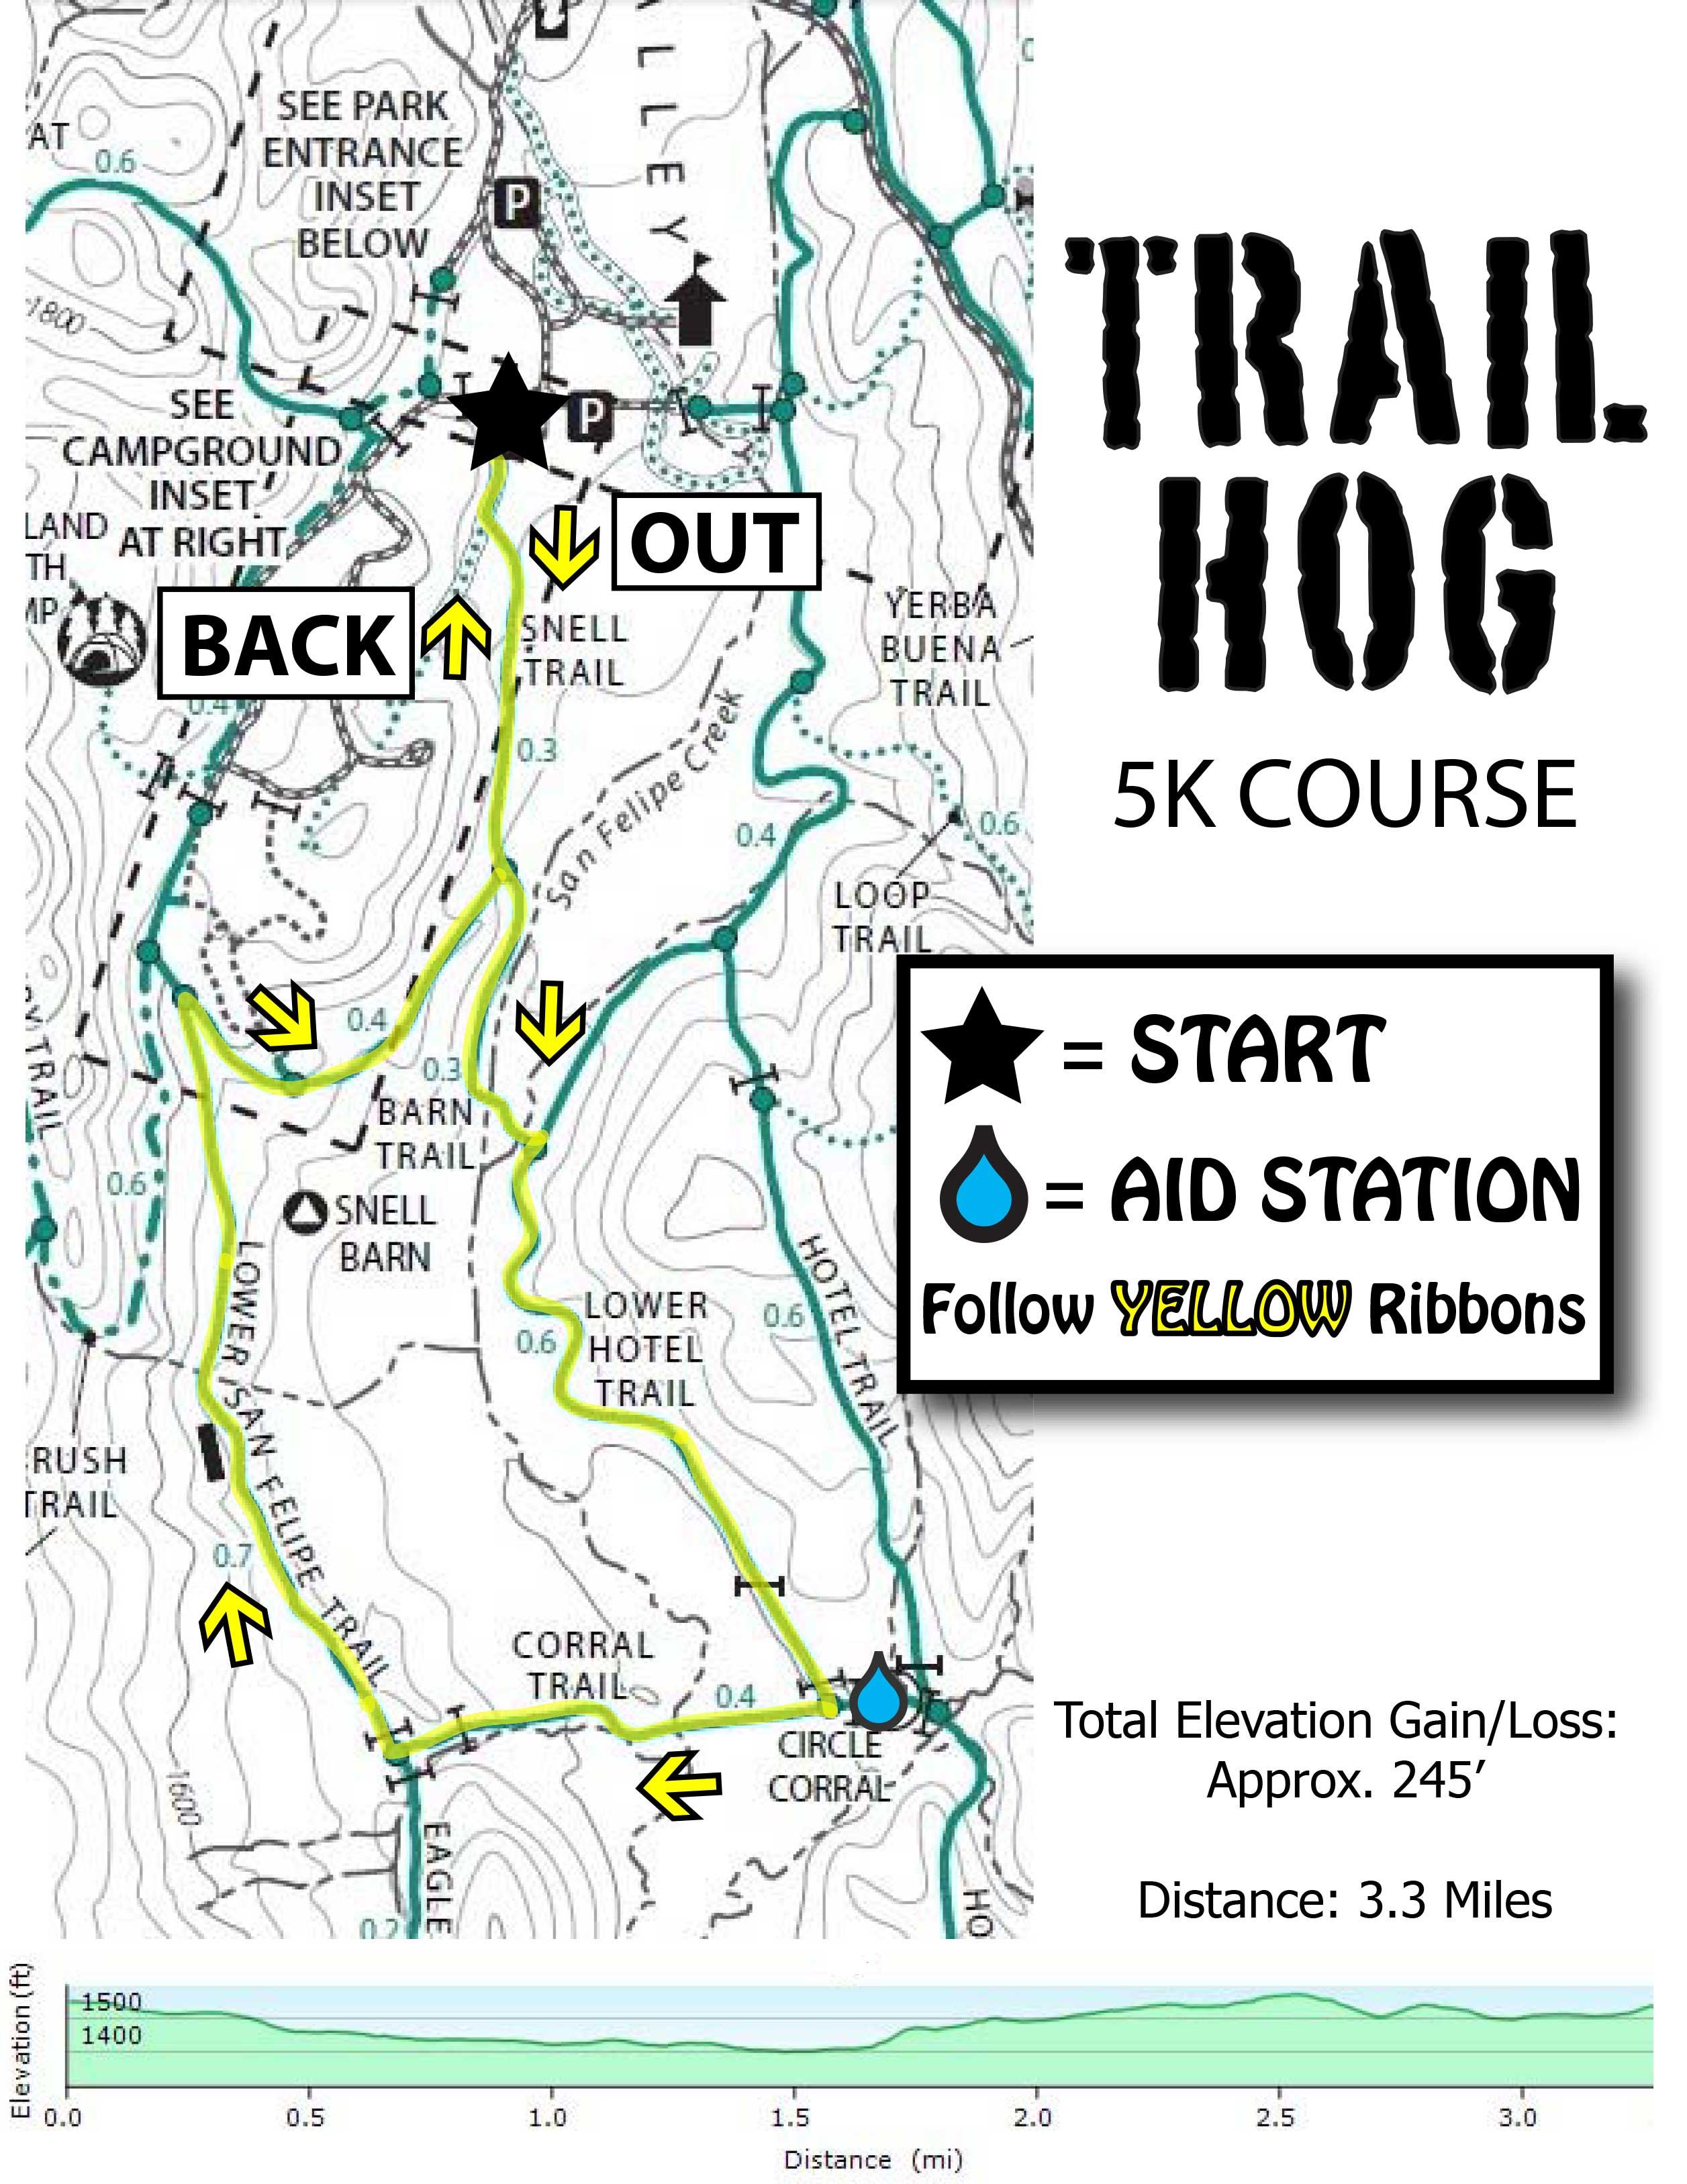 Trail-Hog-5K-Map-and-Elevation